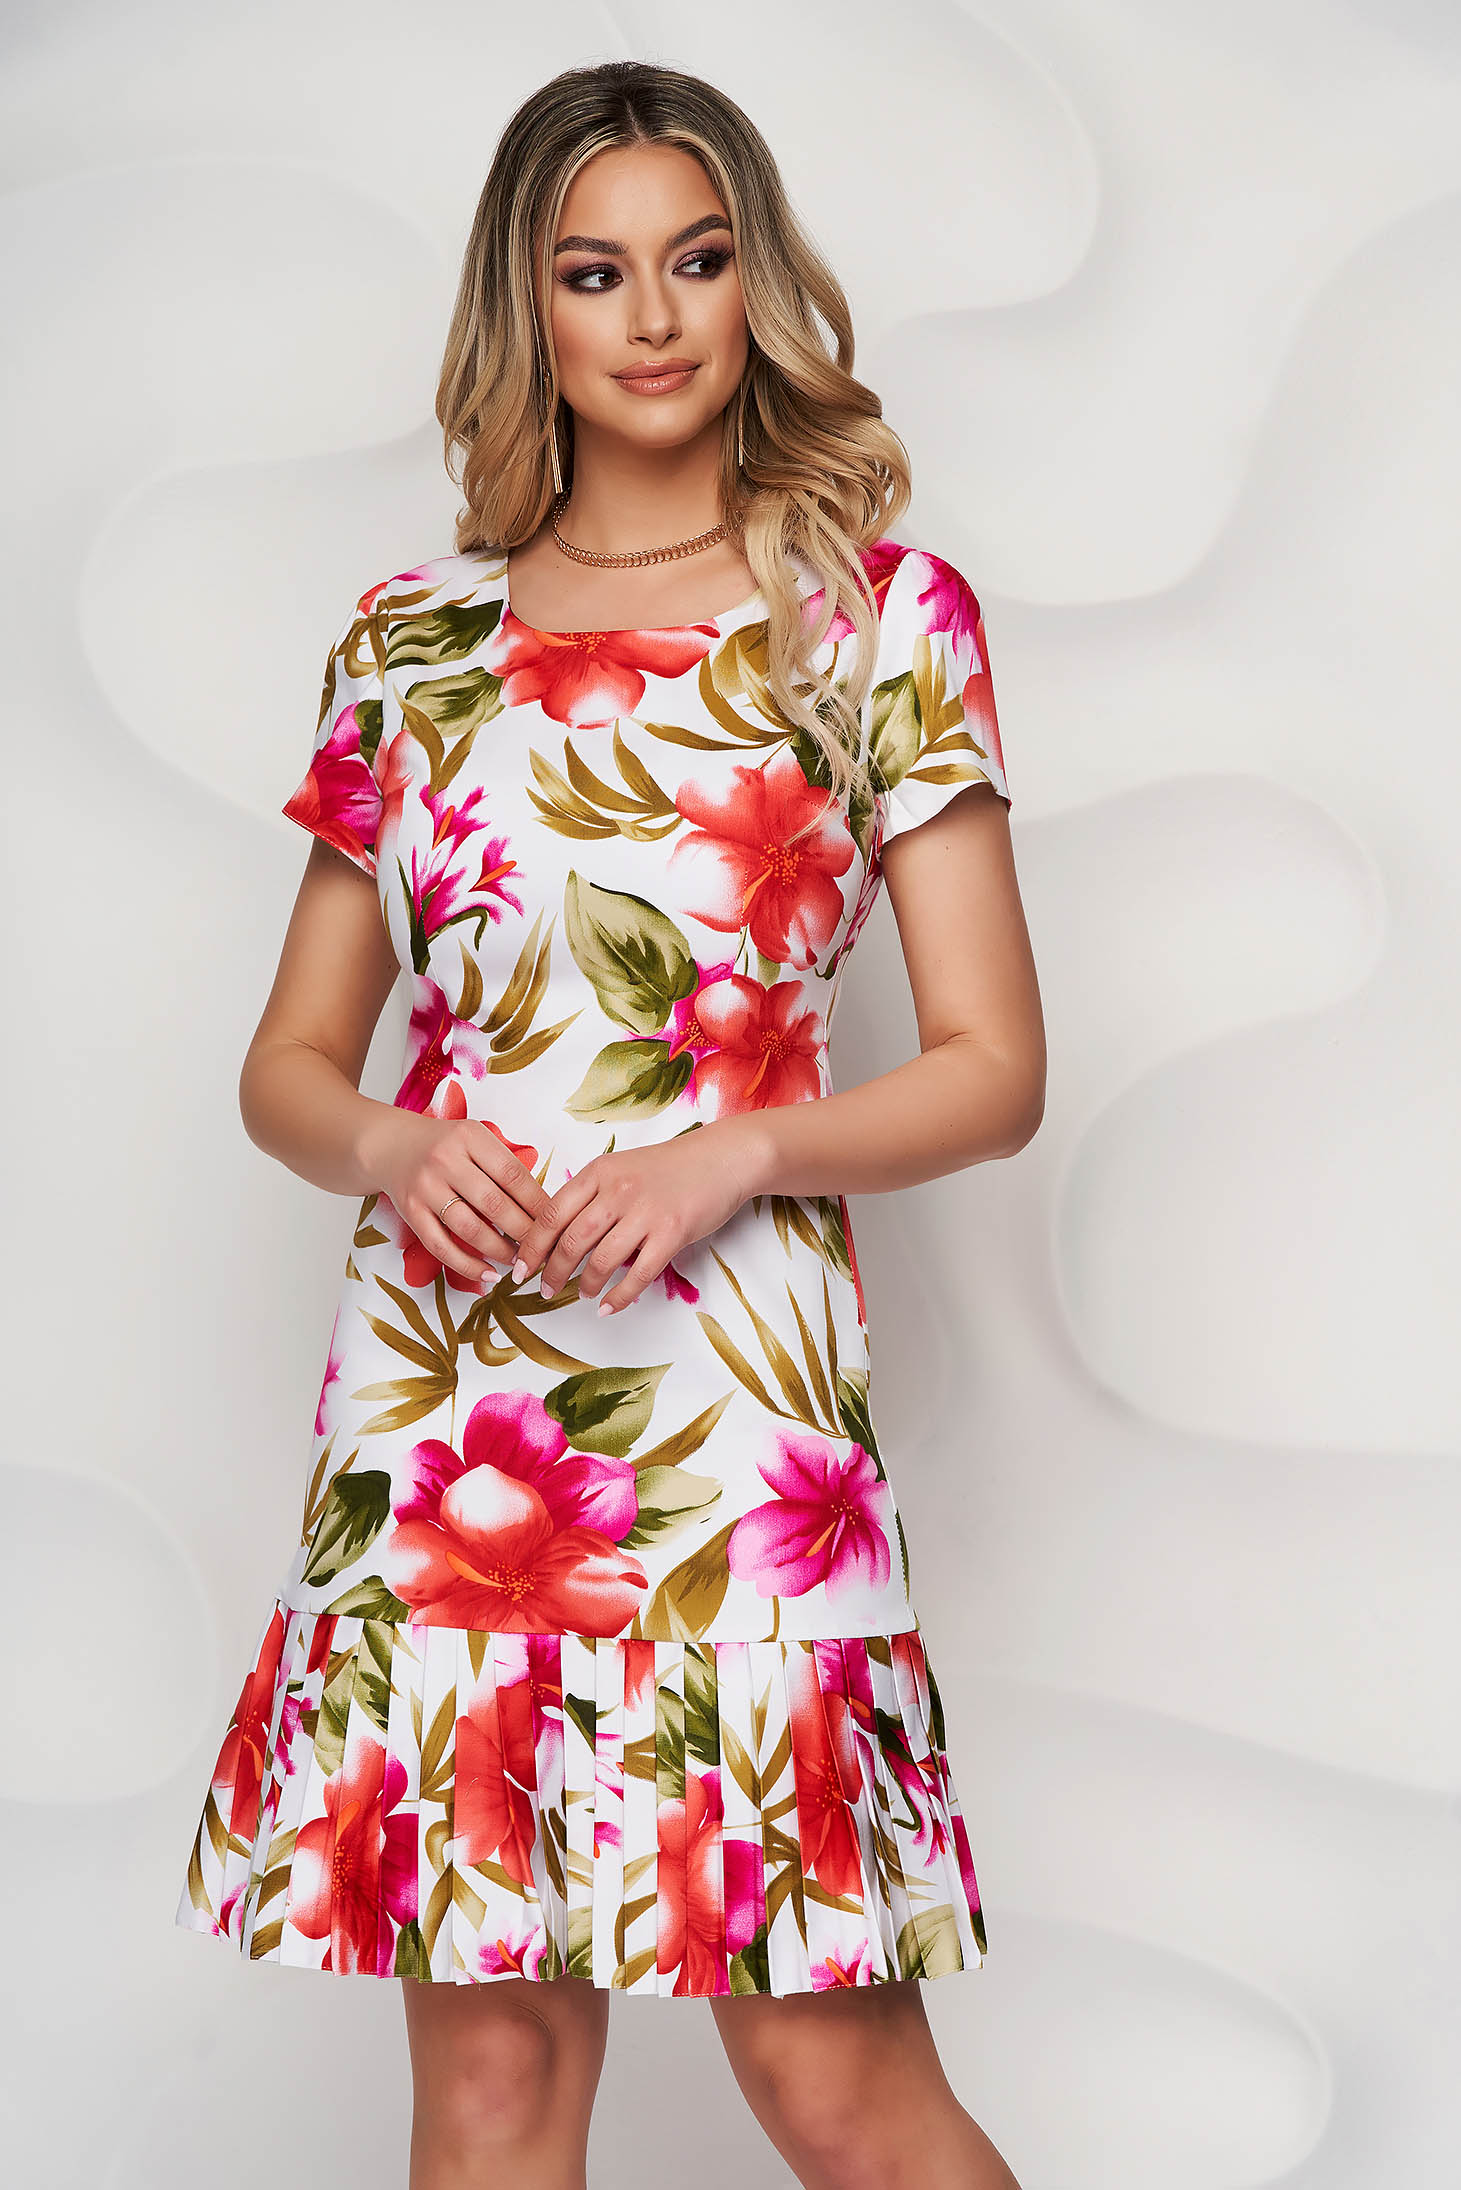 White dress with rounded cleavage with floral print pleats of material midi